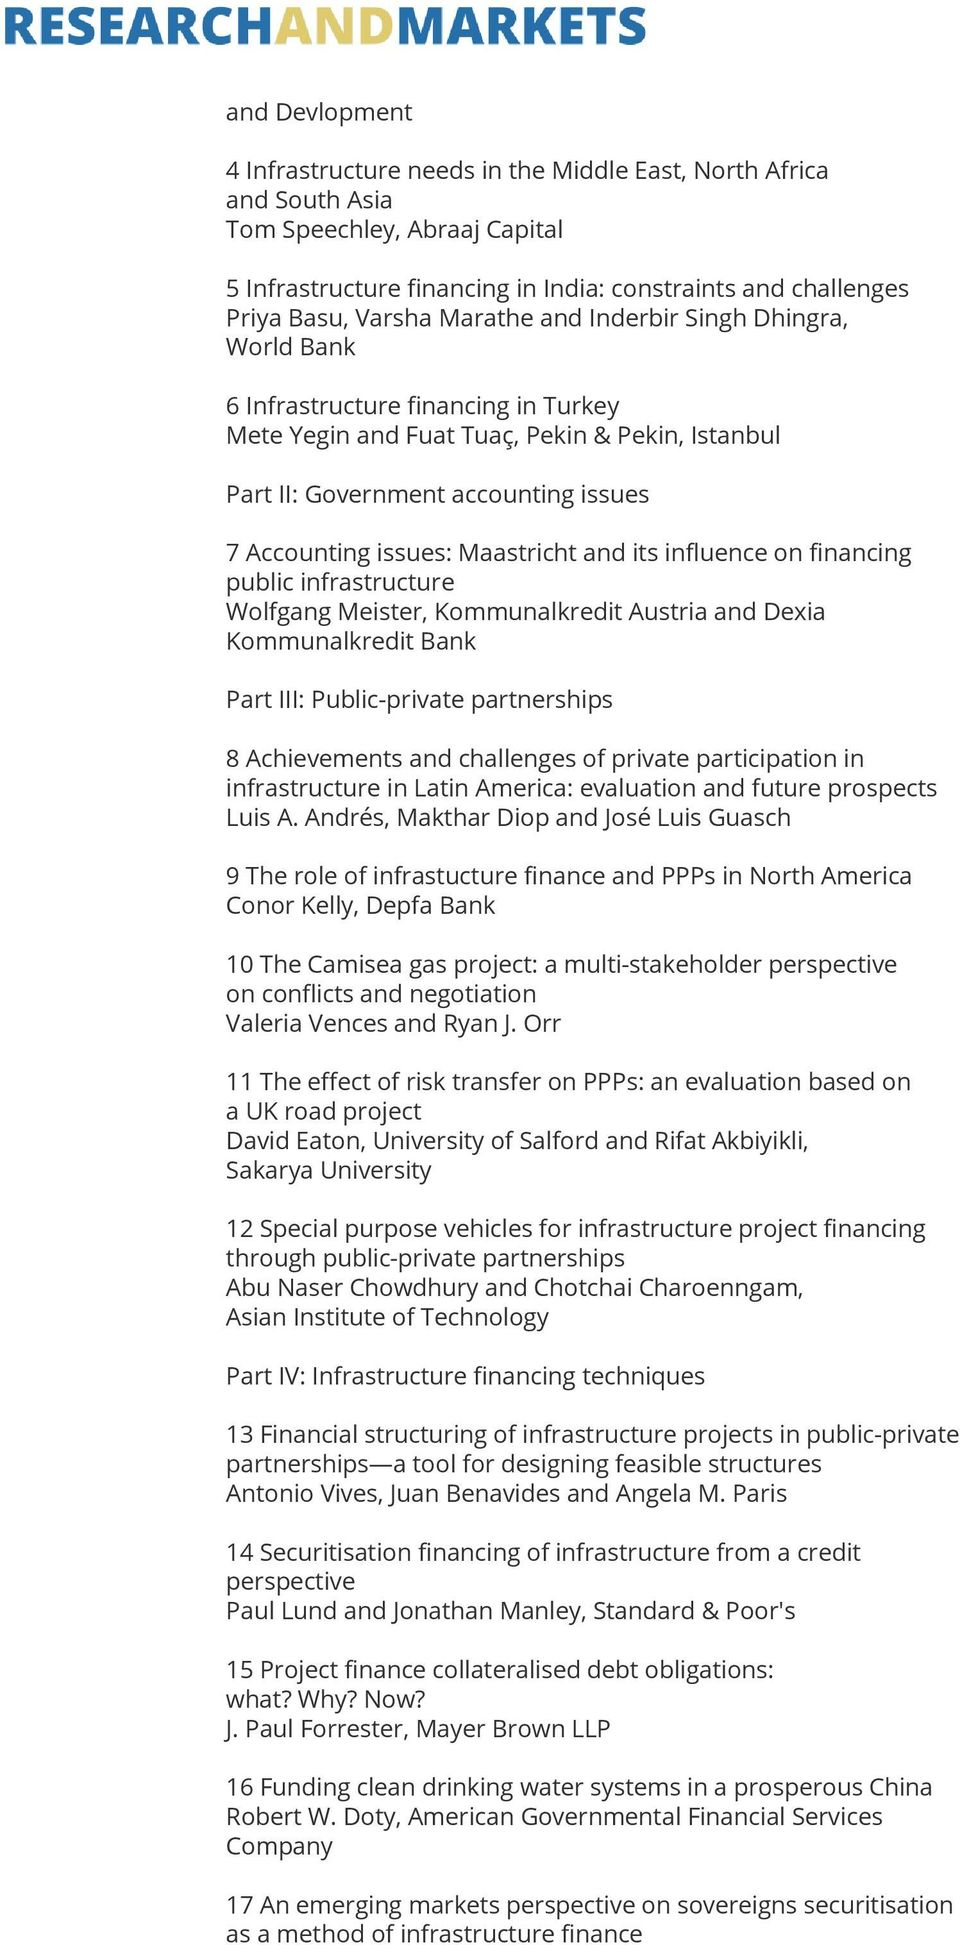 Maastricht and its influence on financing public infrastructure Wolfgang Meister, Kommunalkredit Austria and Dexia Kommunalkredit Bank Part III: Public-private partnerships 8 Achievements and